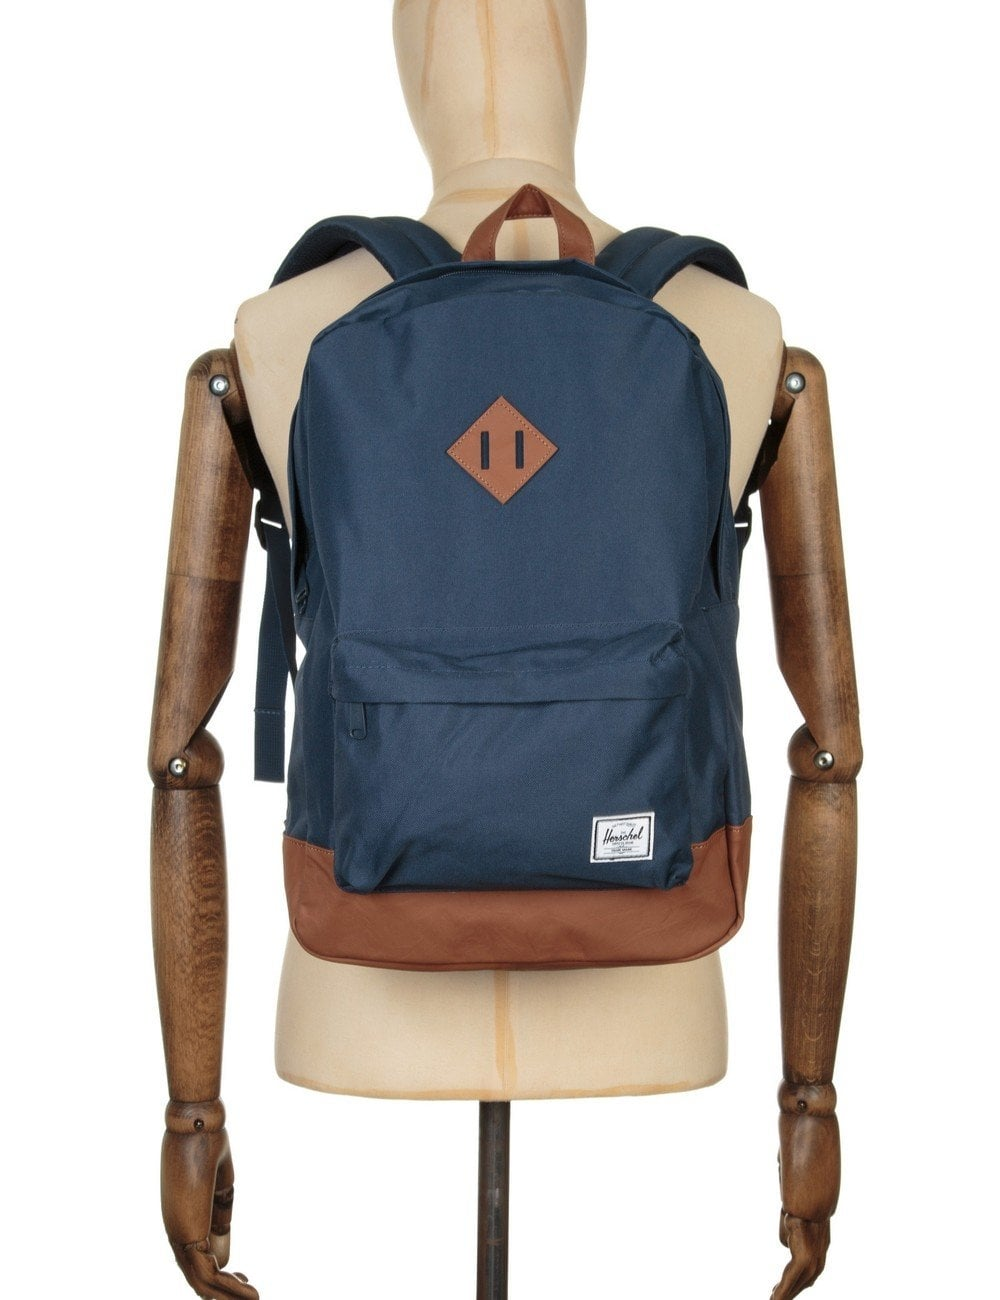 herschel supply co heritage 21 5l backpack navy tan accessories from fat buddha store uk. Black Bedroom Furniture Sets. Home Design Ideas